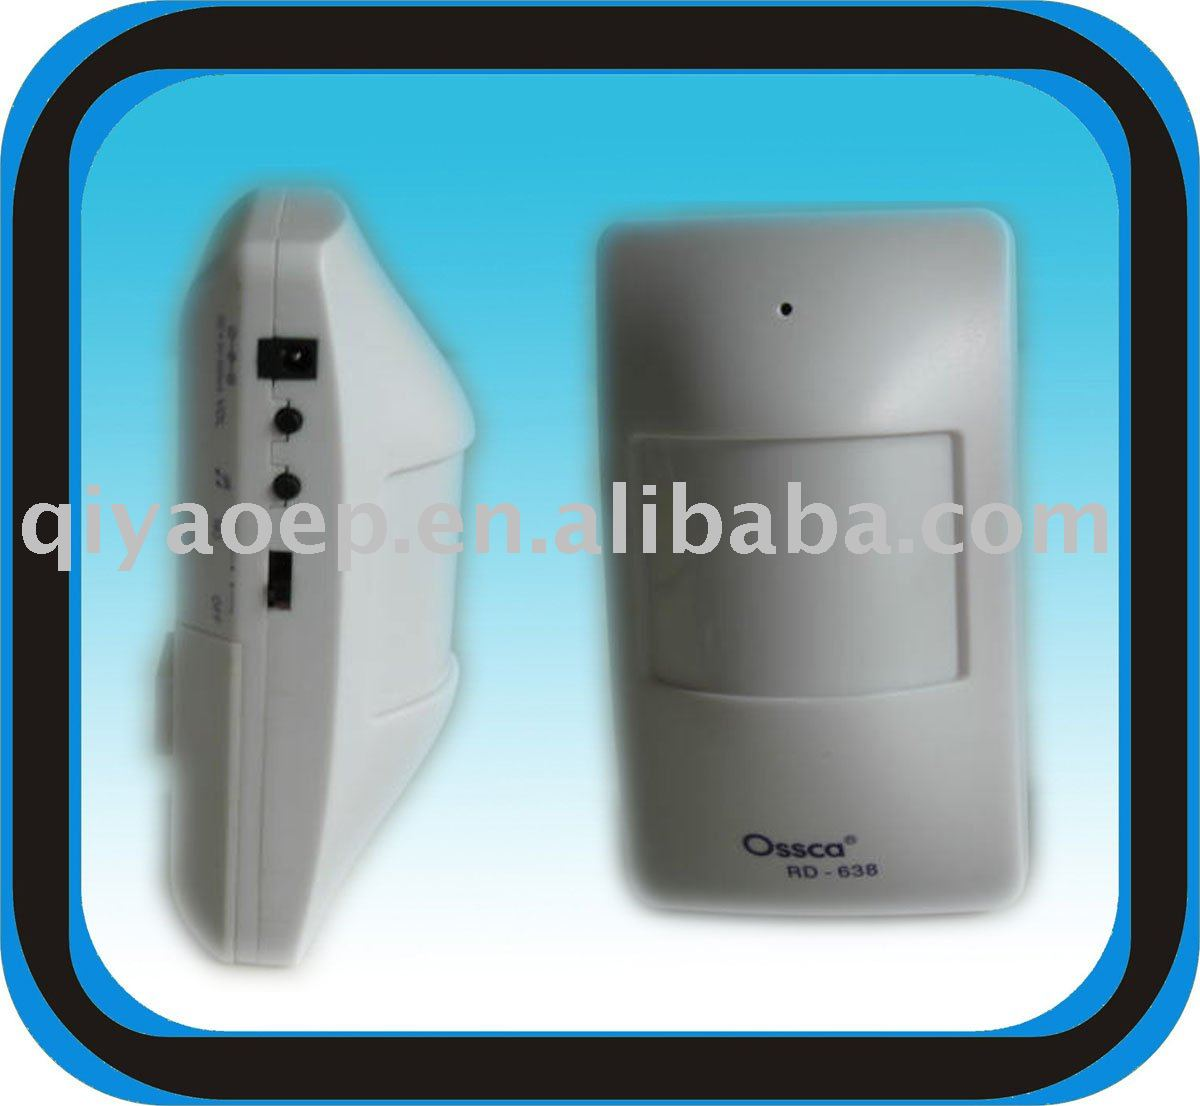 Sensor Doorbell Motion Door Chime Battery Operated Sound Friedland Chimes Wiring Diagram While People Pass Near Buy Doorbellwireless Doorbellsensor Bell Product On